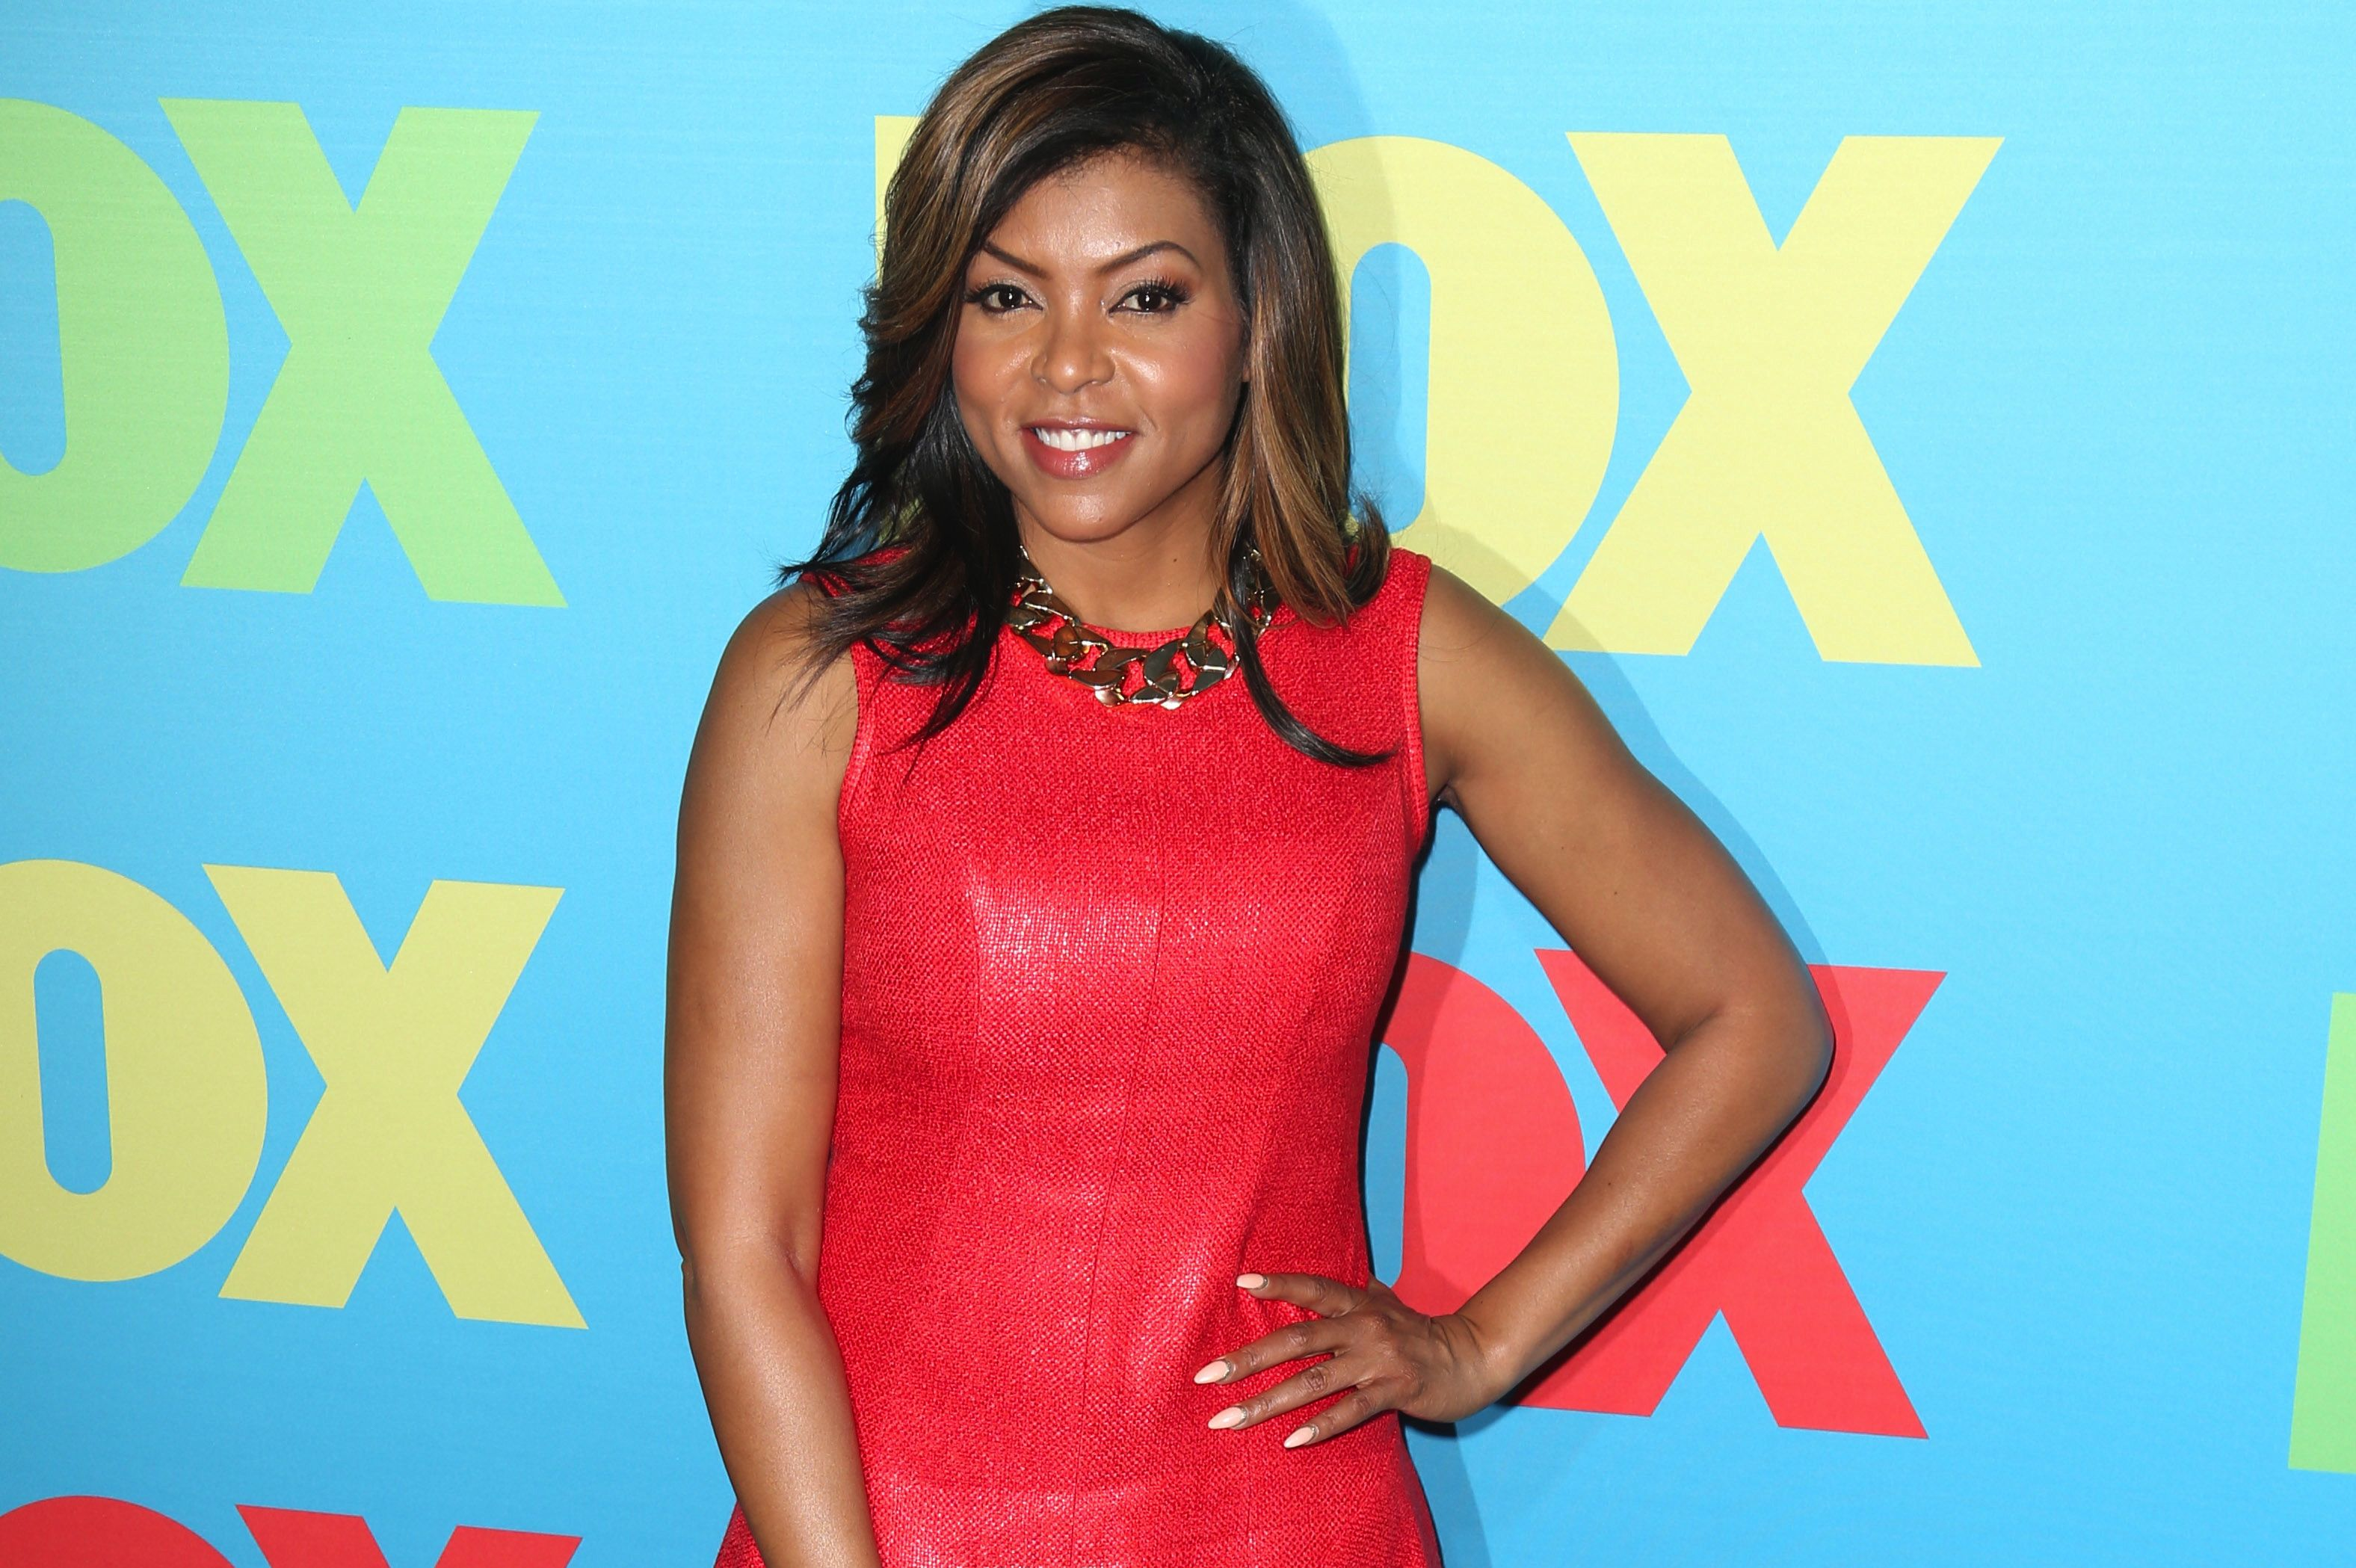 Taraji P. Henson Issues an Apology to Police for Alleging